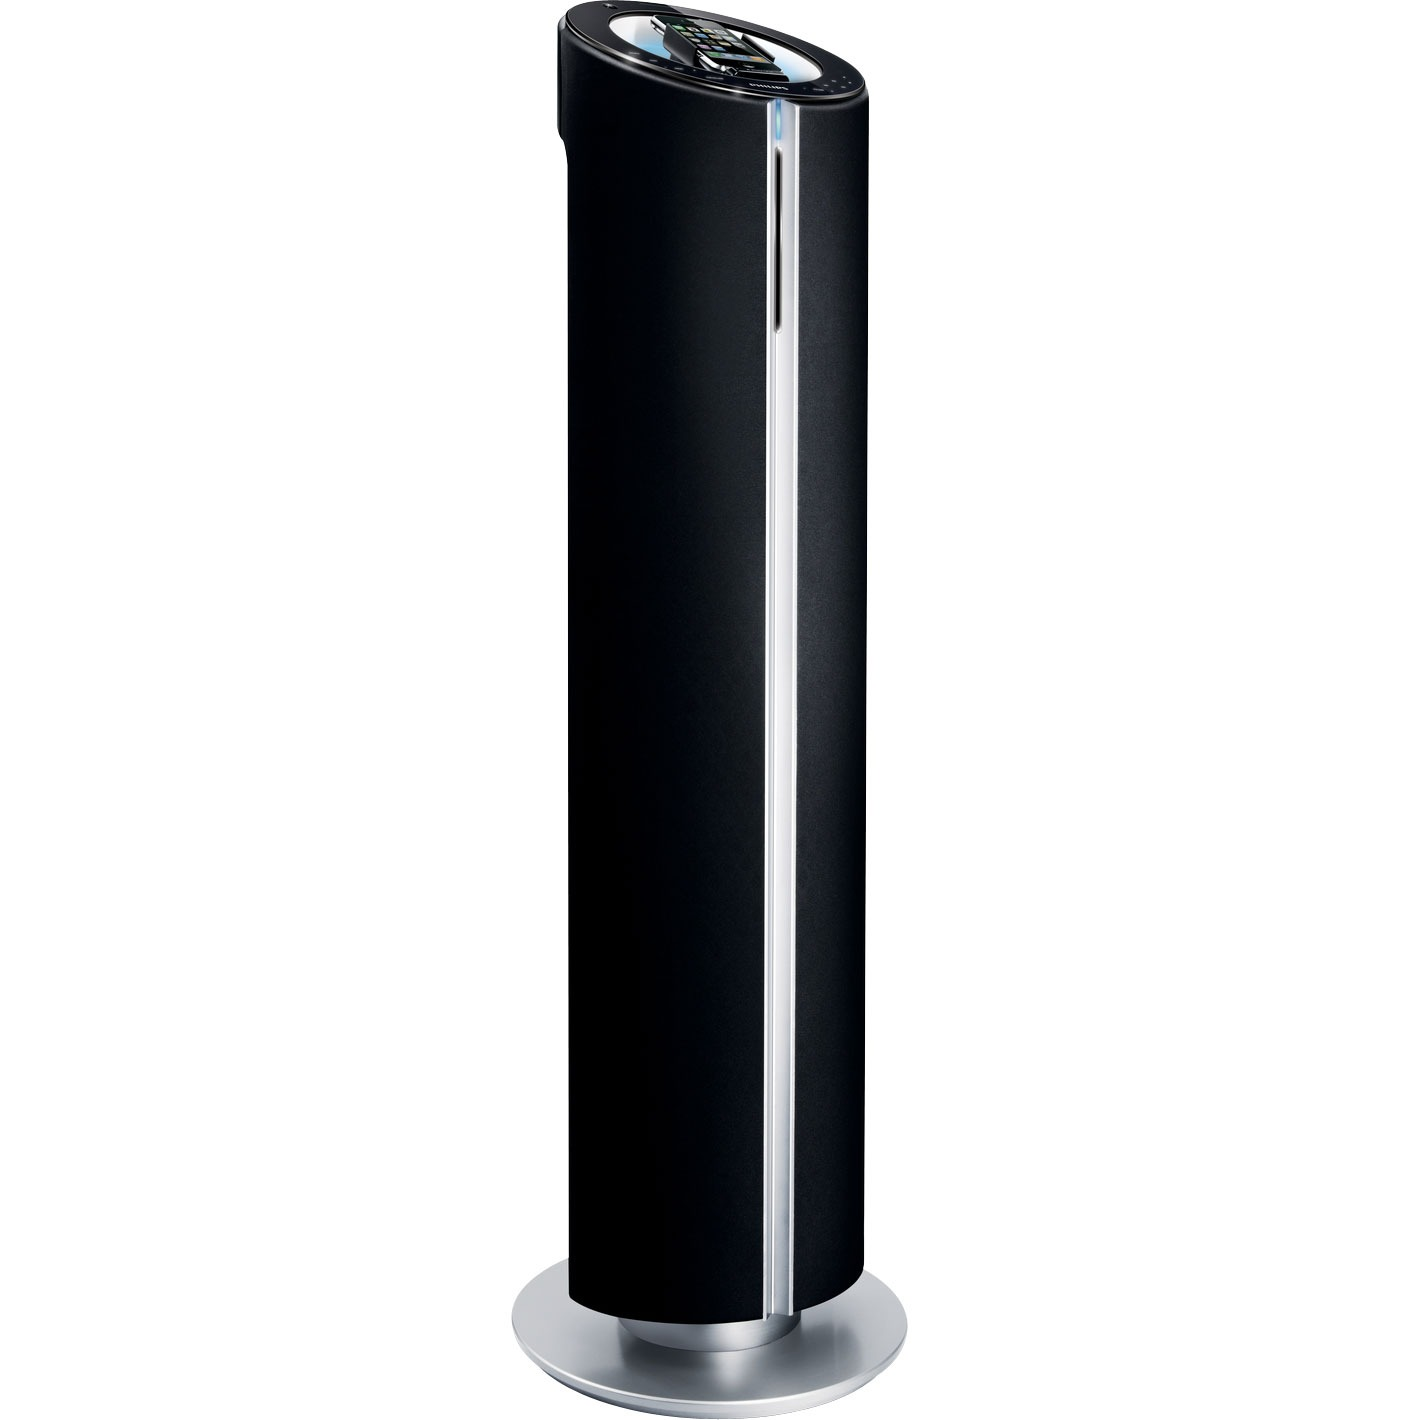 philips dcm580 dock enceinte bluetooth philips sur ldlc. Black Bedroom Furniture Sets. Home Design Ideas